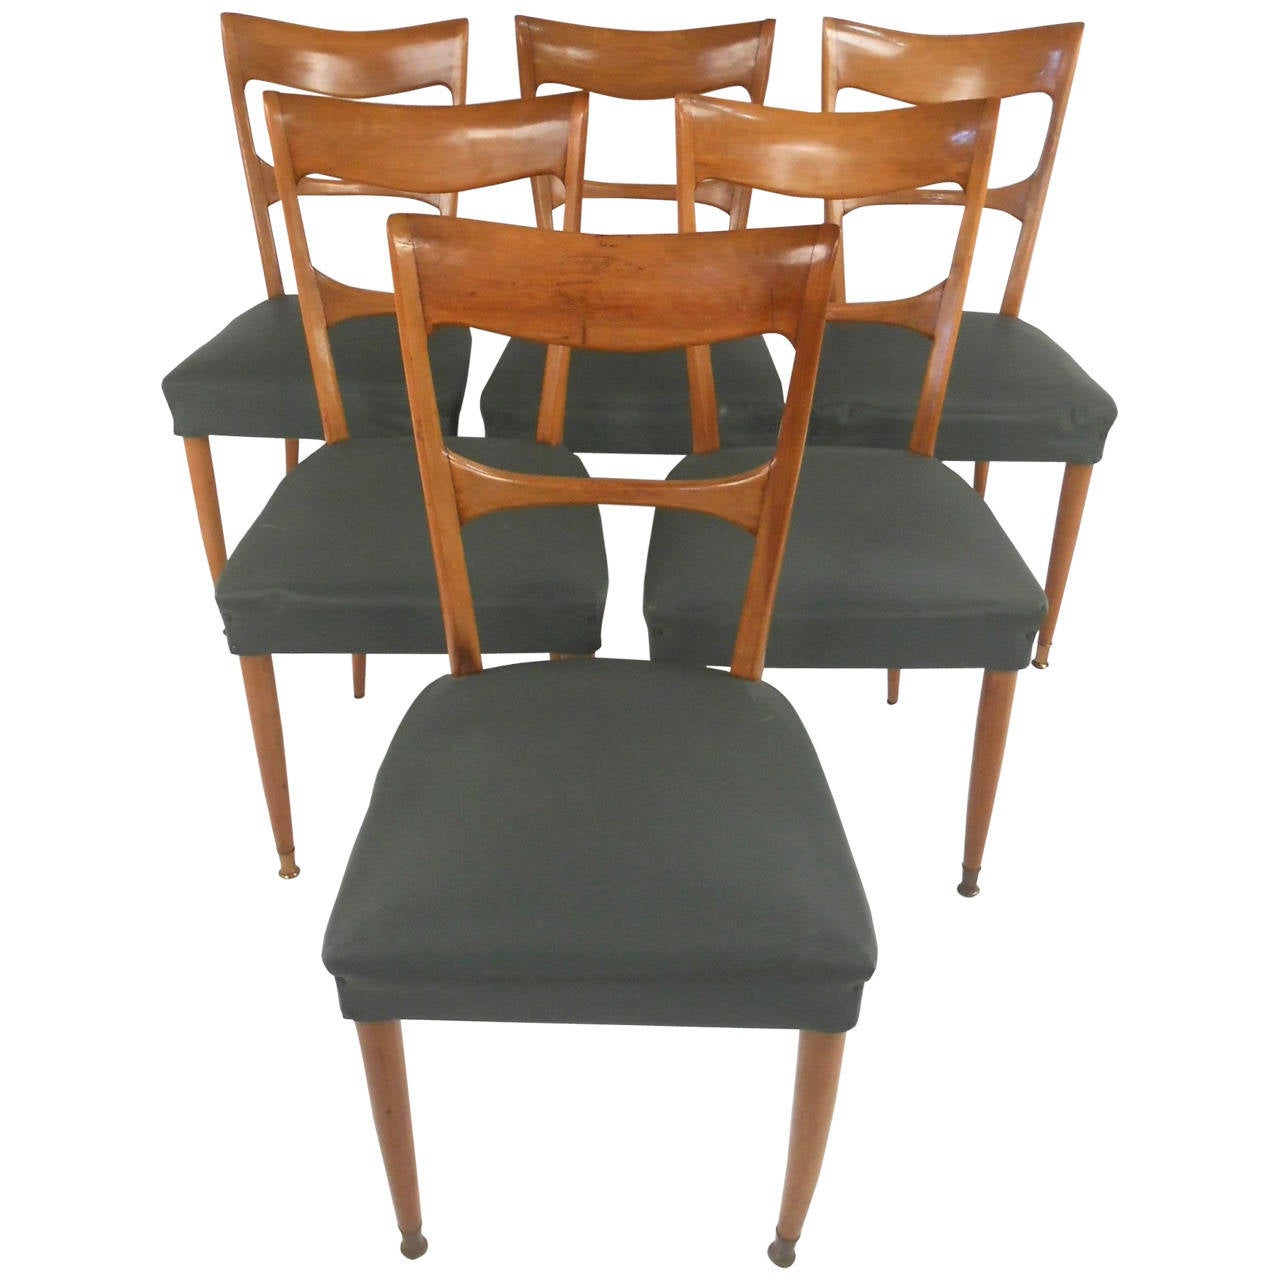 Set of italian mid century modern osvaldo borsani style for Italian dining chairs modern